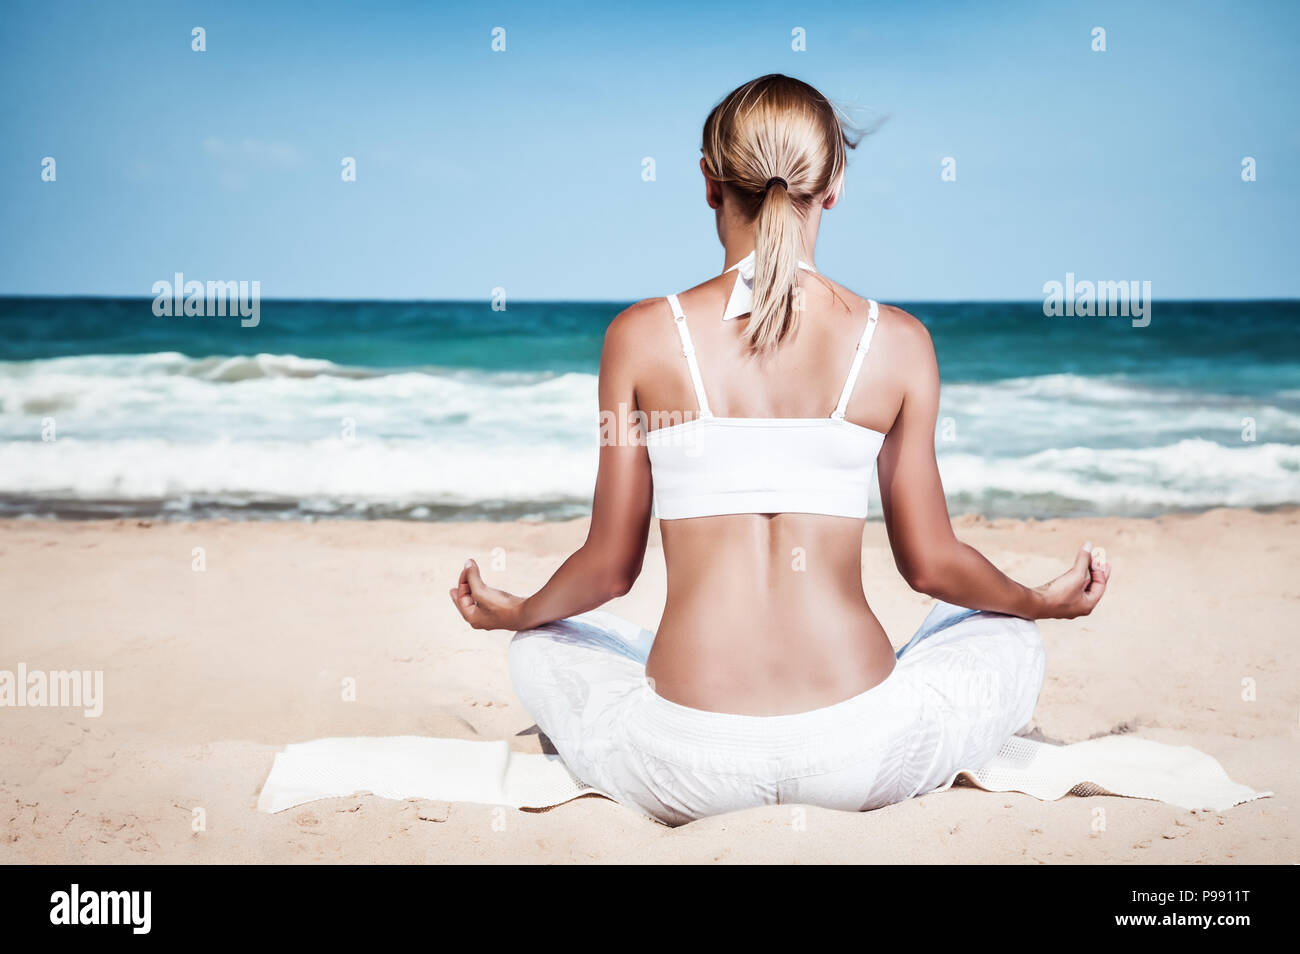 Woman meditating on the beach, rear view of a slim healthy girl sitting in lotus pose and enjoying beautiful view of a sea, mindfulness - Stock Image